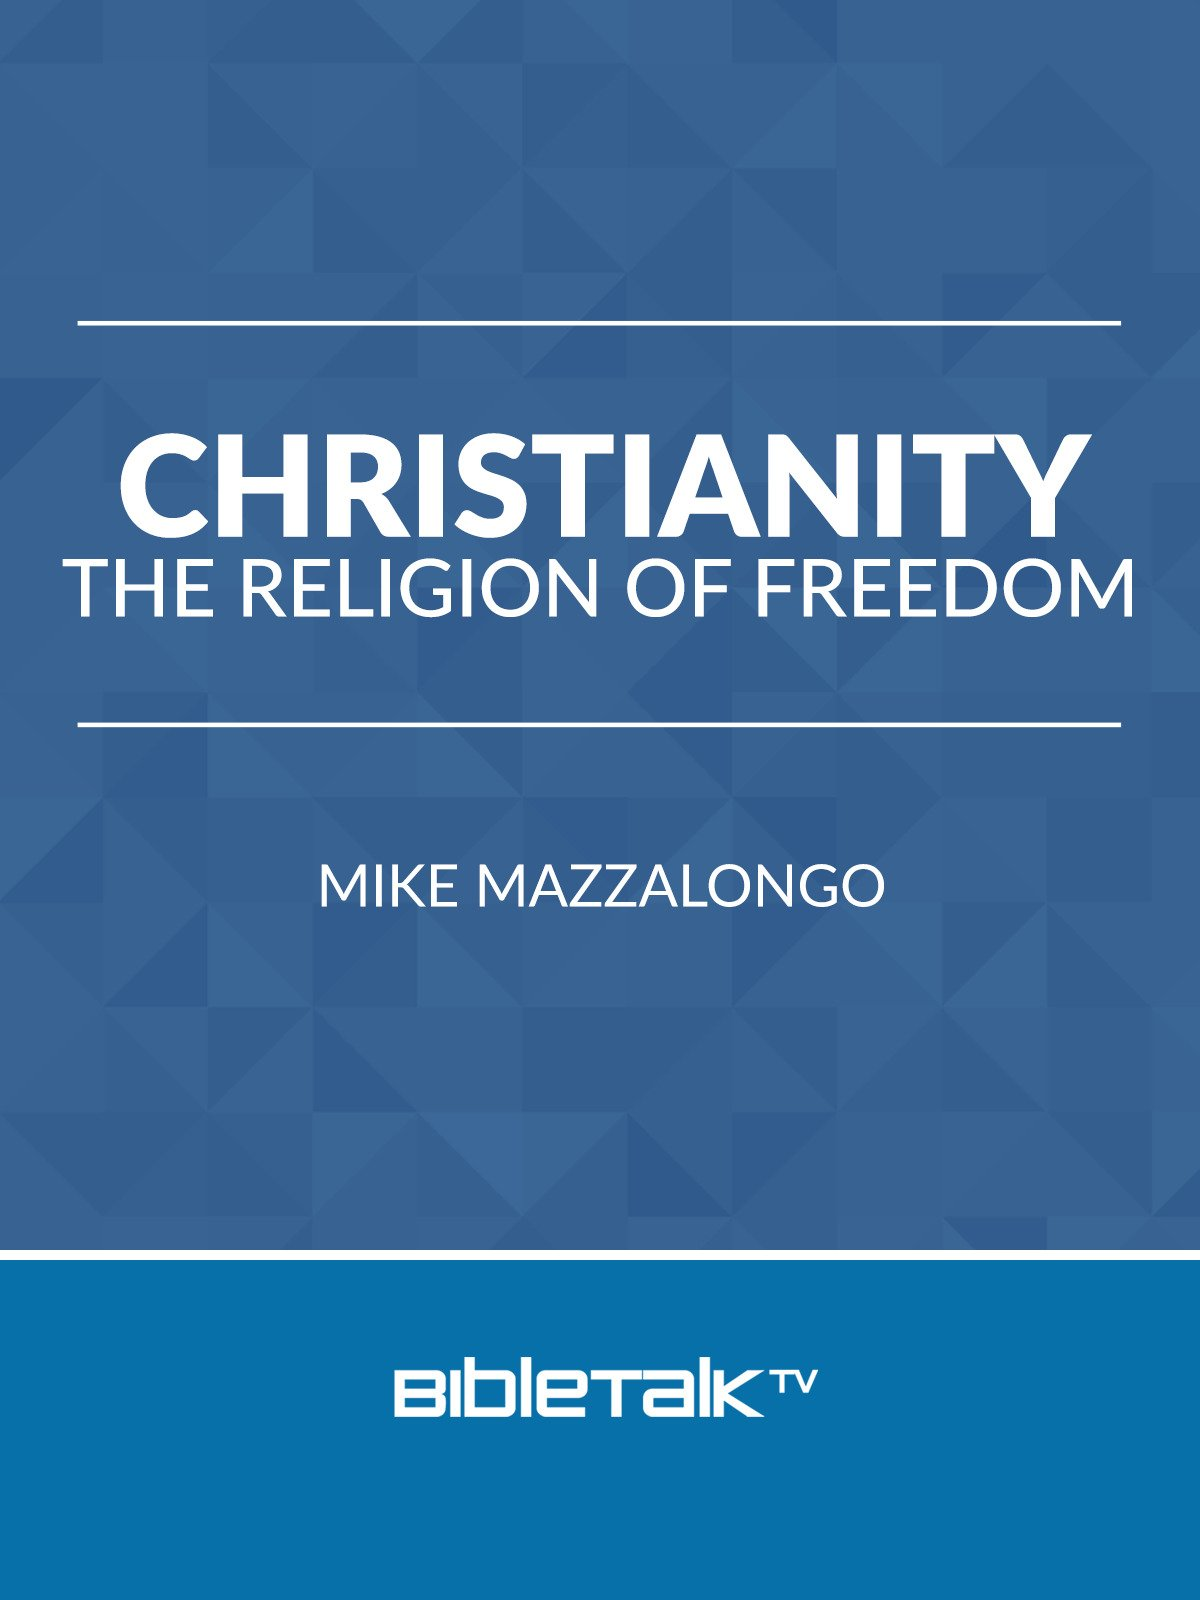 Christianity: The Religion of Freedom